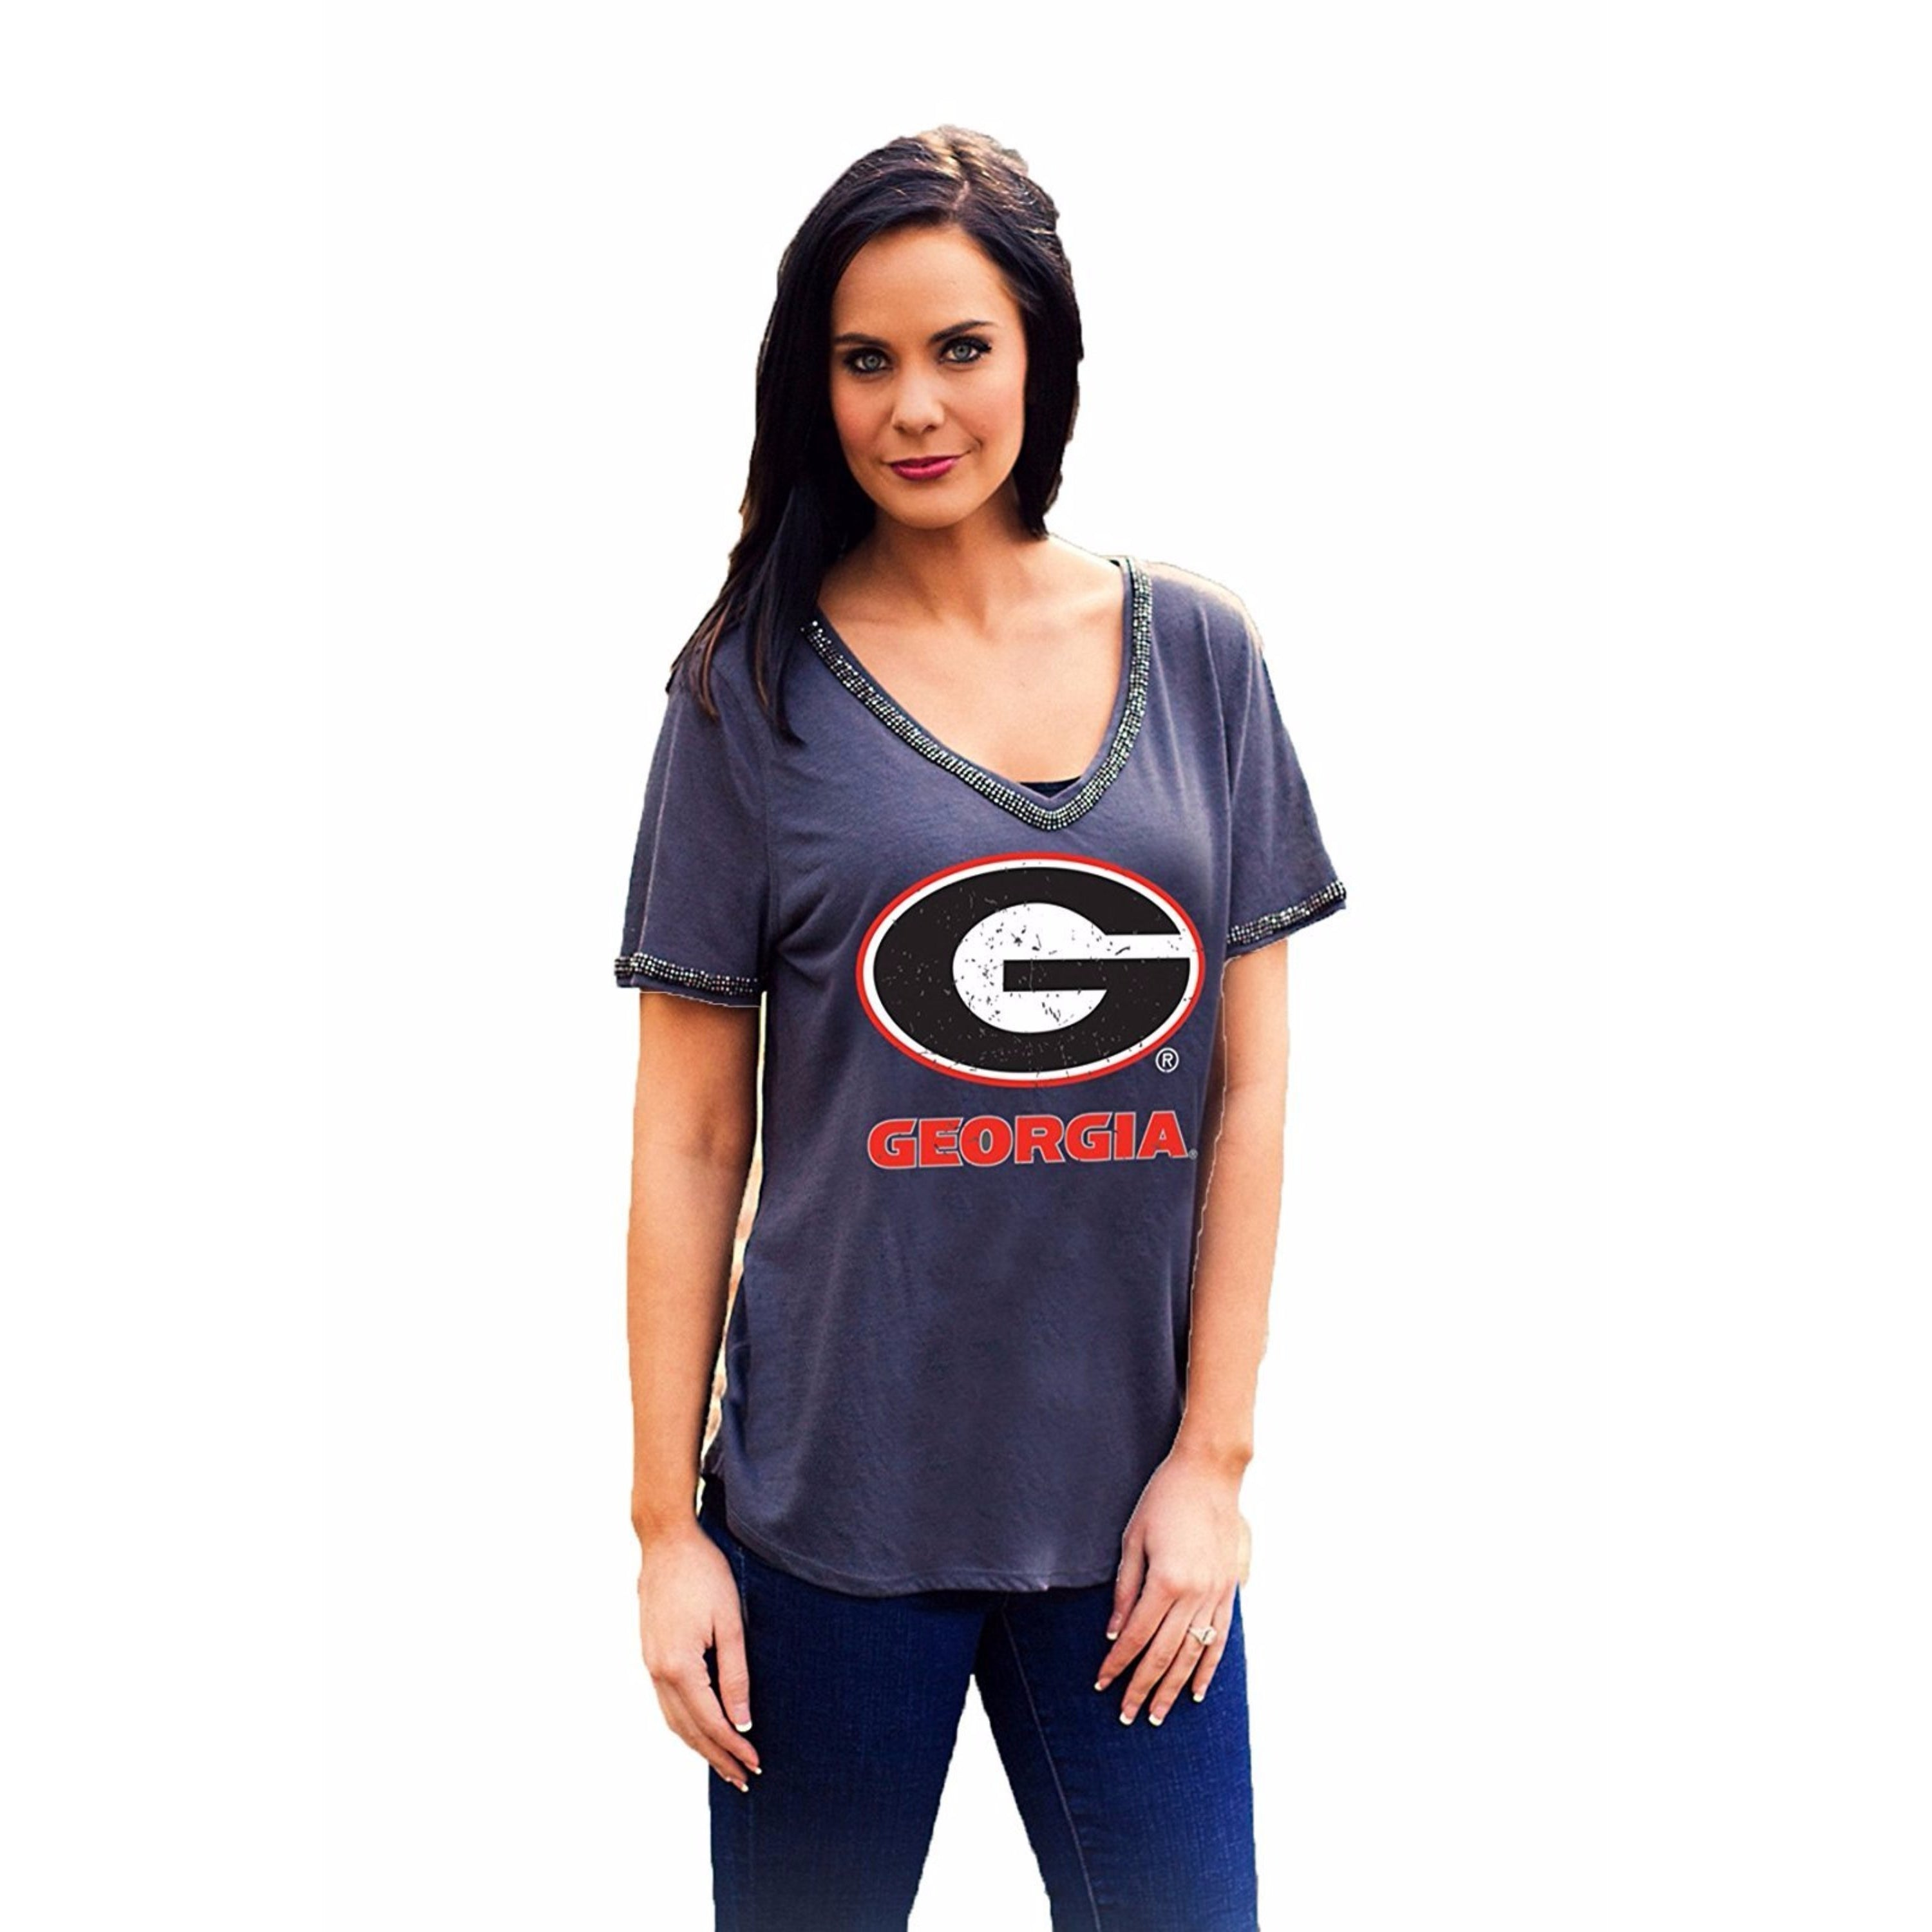 Gameday Couture Victory Is Ours - Georgia - Southern Ivy Boutique